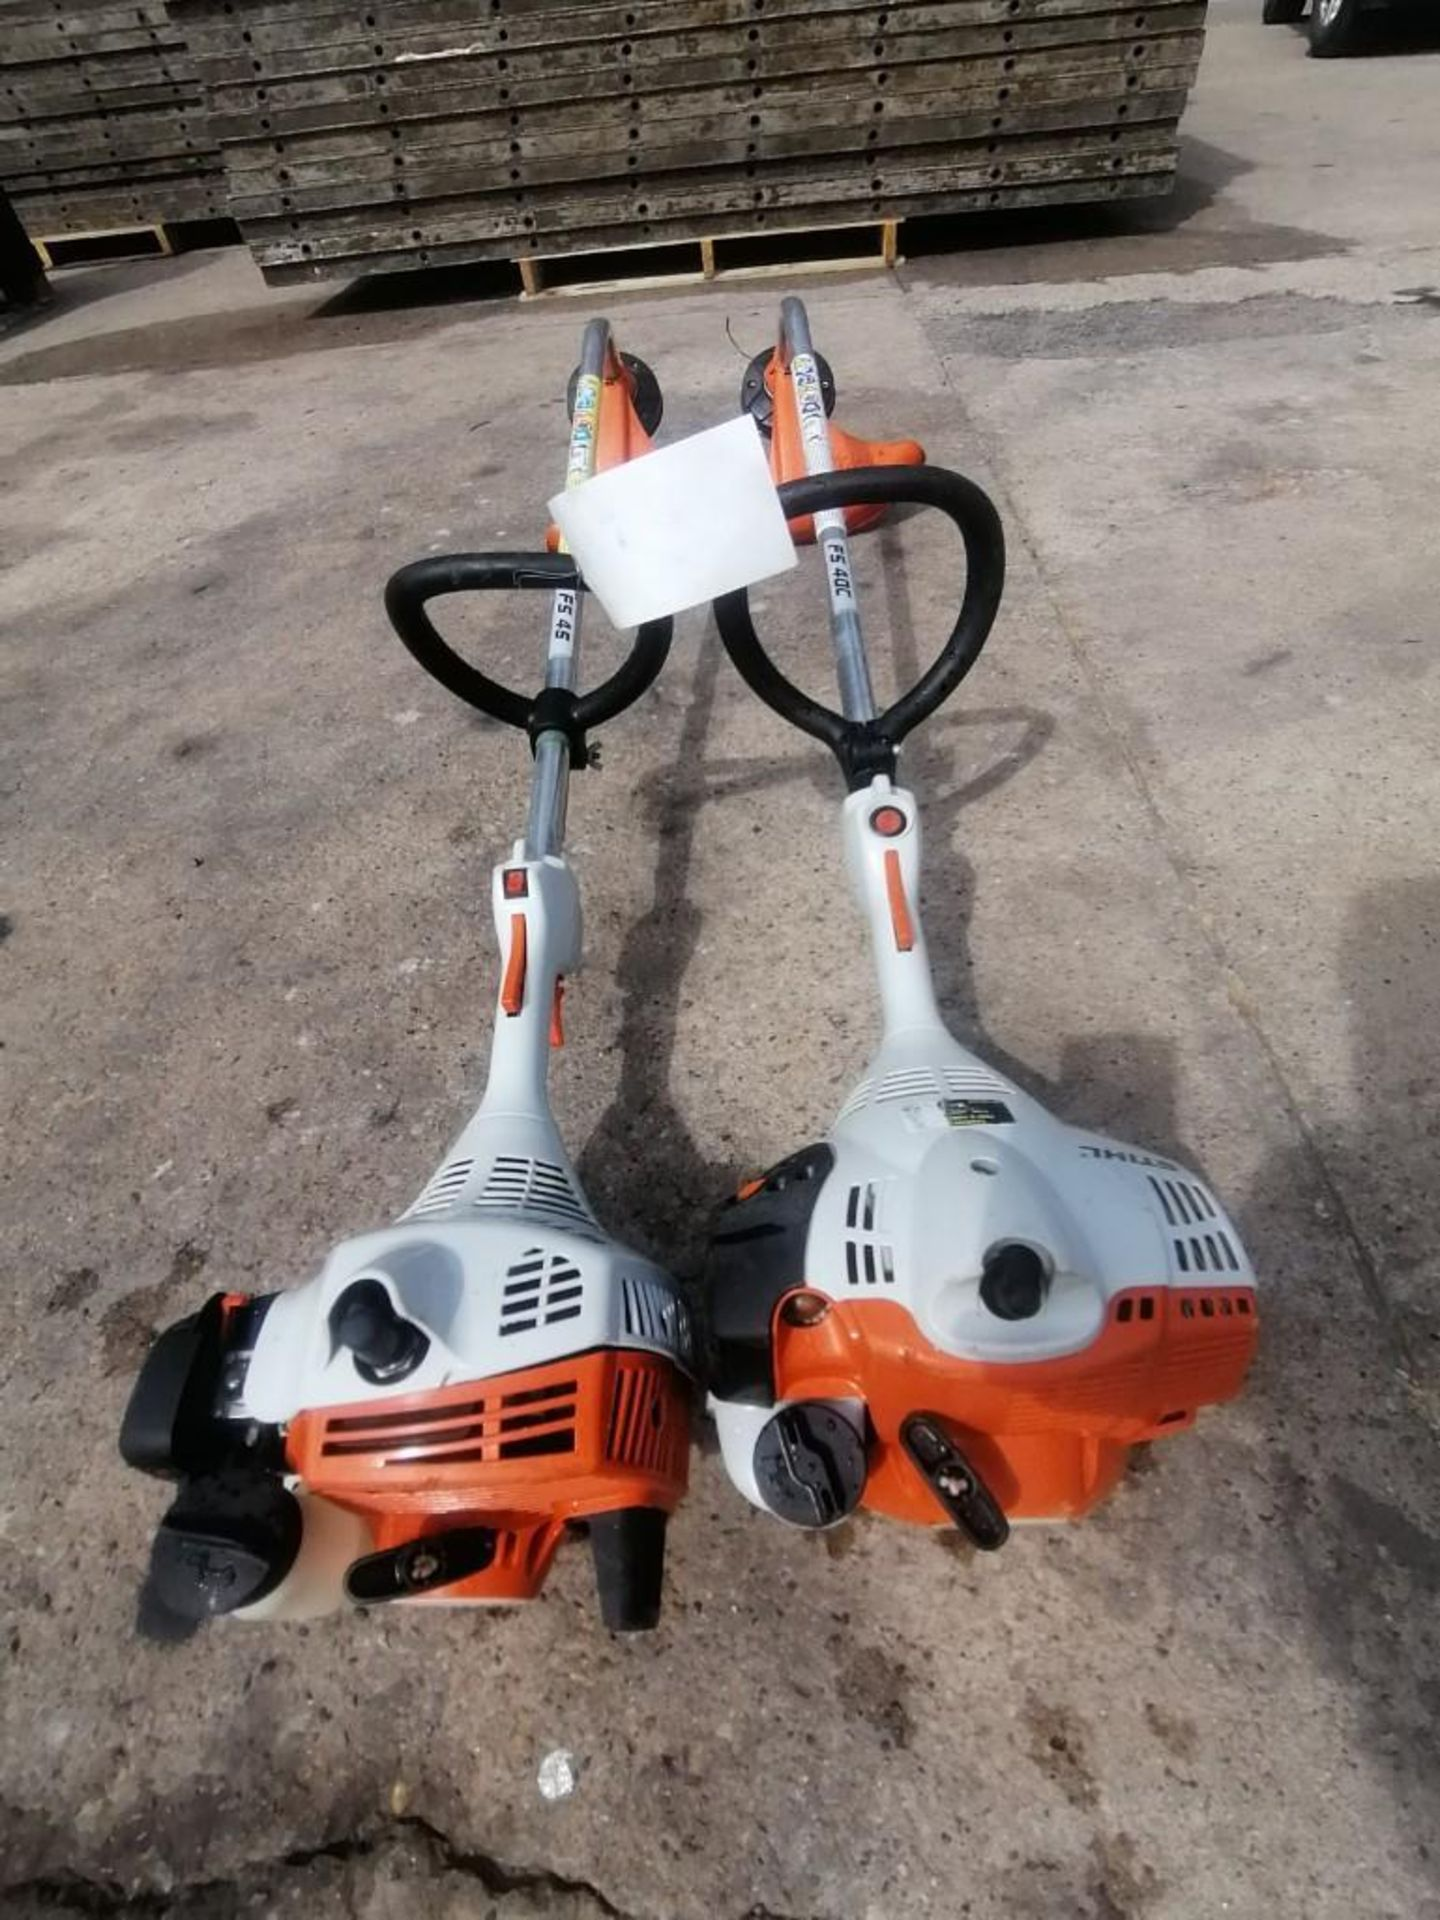 Lot 39 - (1) Stihl FS40C String Trimmer & (1) Stihl FS45 String Trimmer. Located at 301 E Henry Street, Mt.